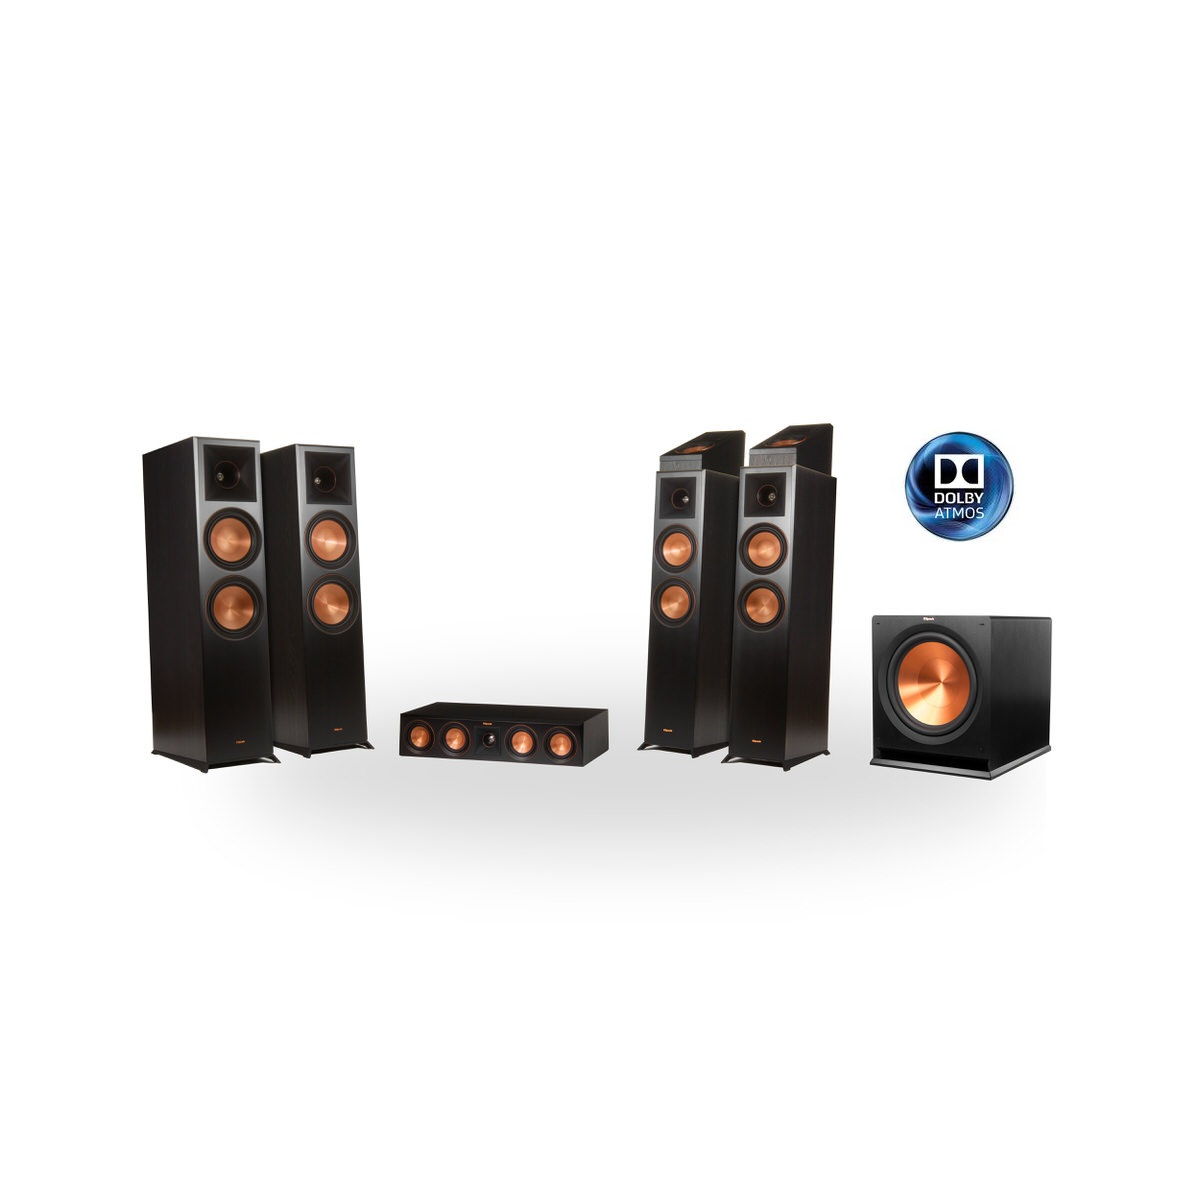 Klipsch Reference Premier RP-8000F 7.1.2 Dolby Atmos Home Theater System (Black)